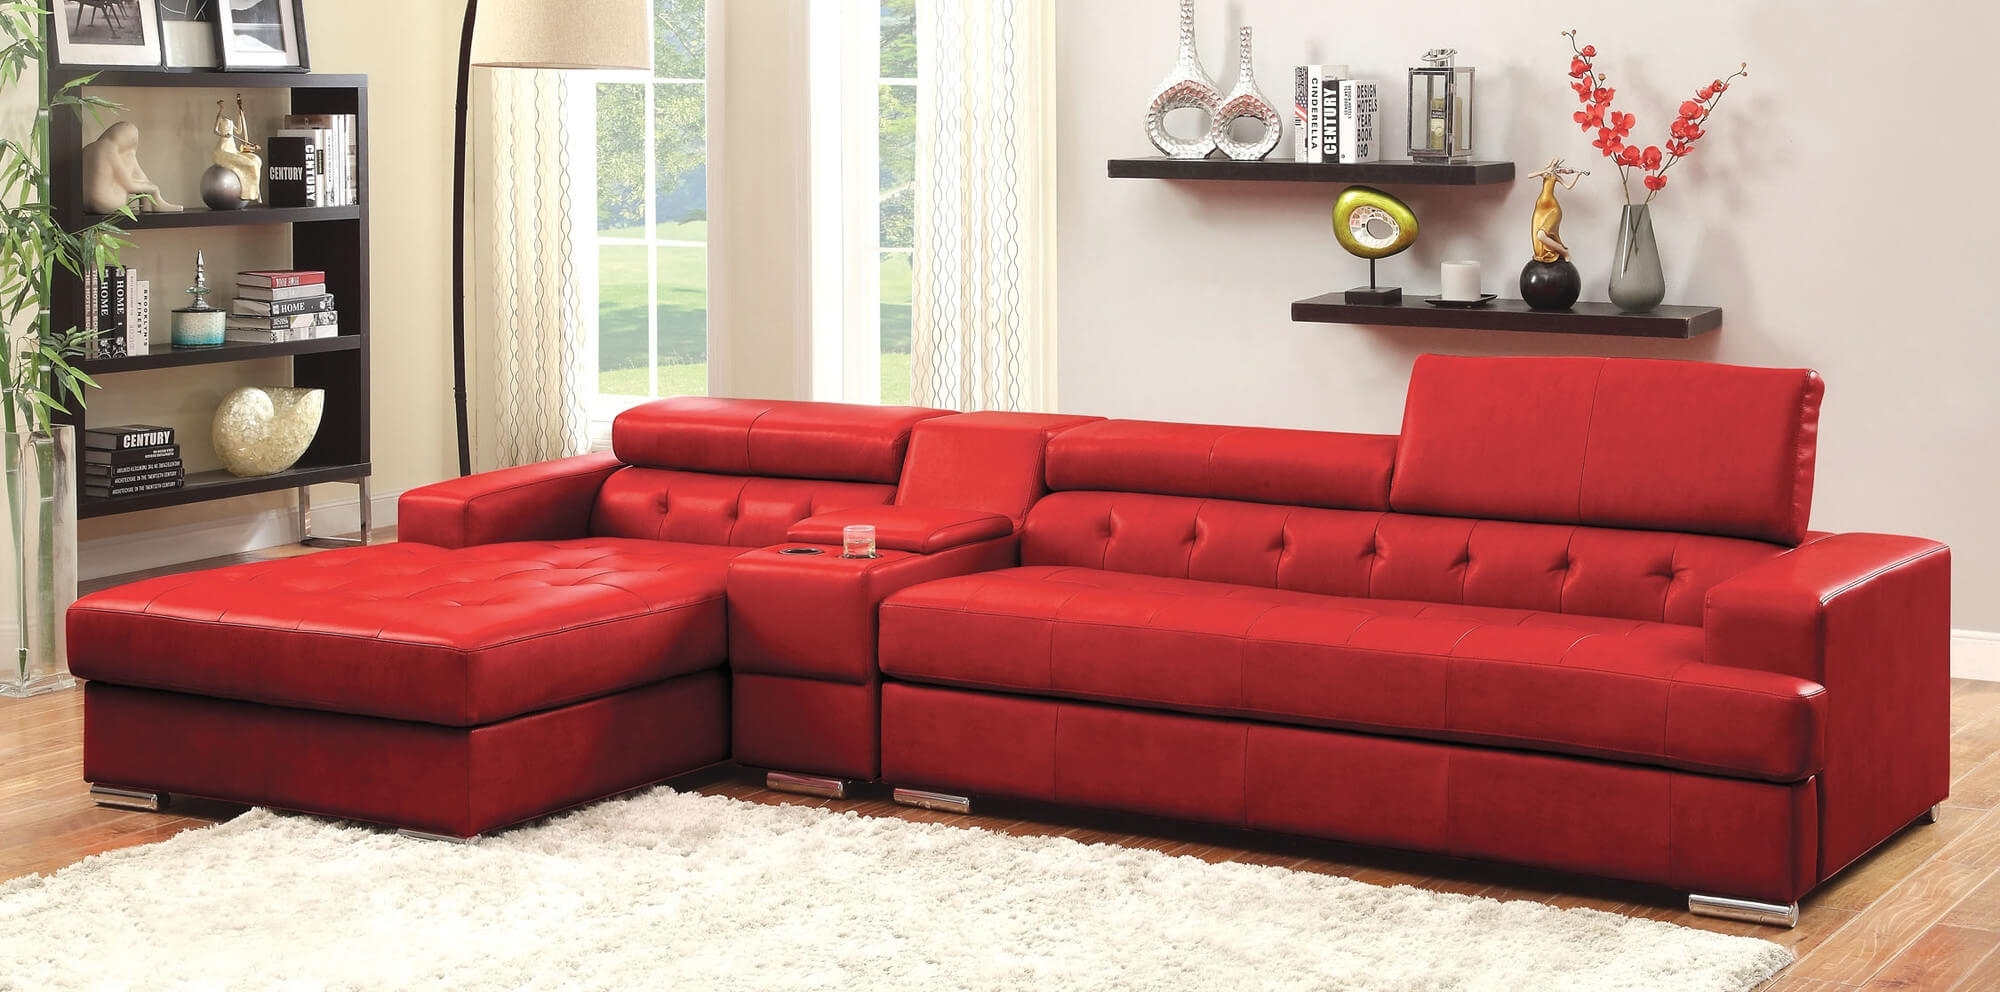 Stylish Modern Red Sectional Sofas In Red Leather Sectionals With Chaise (Image 9 of 10)